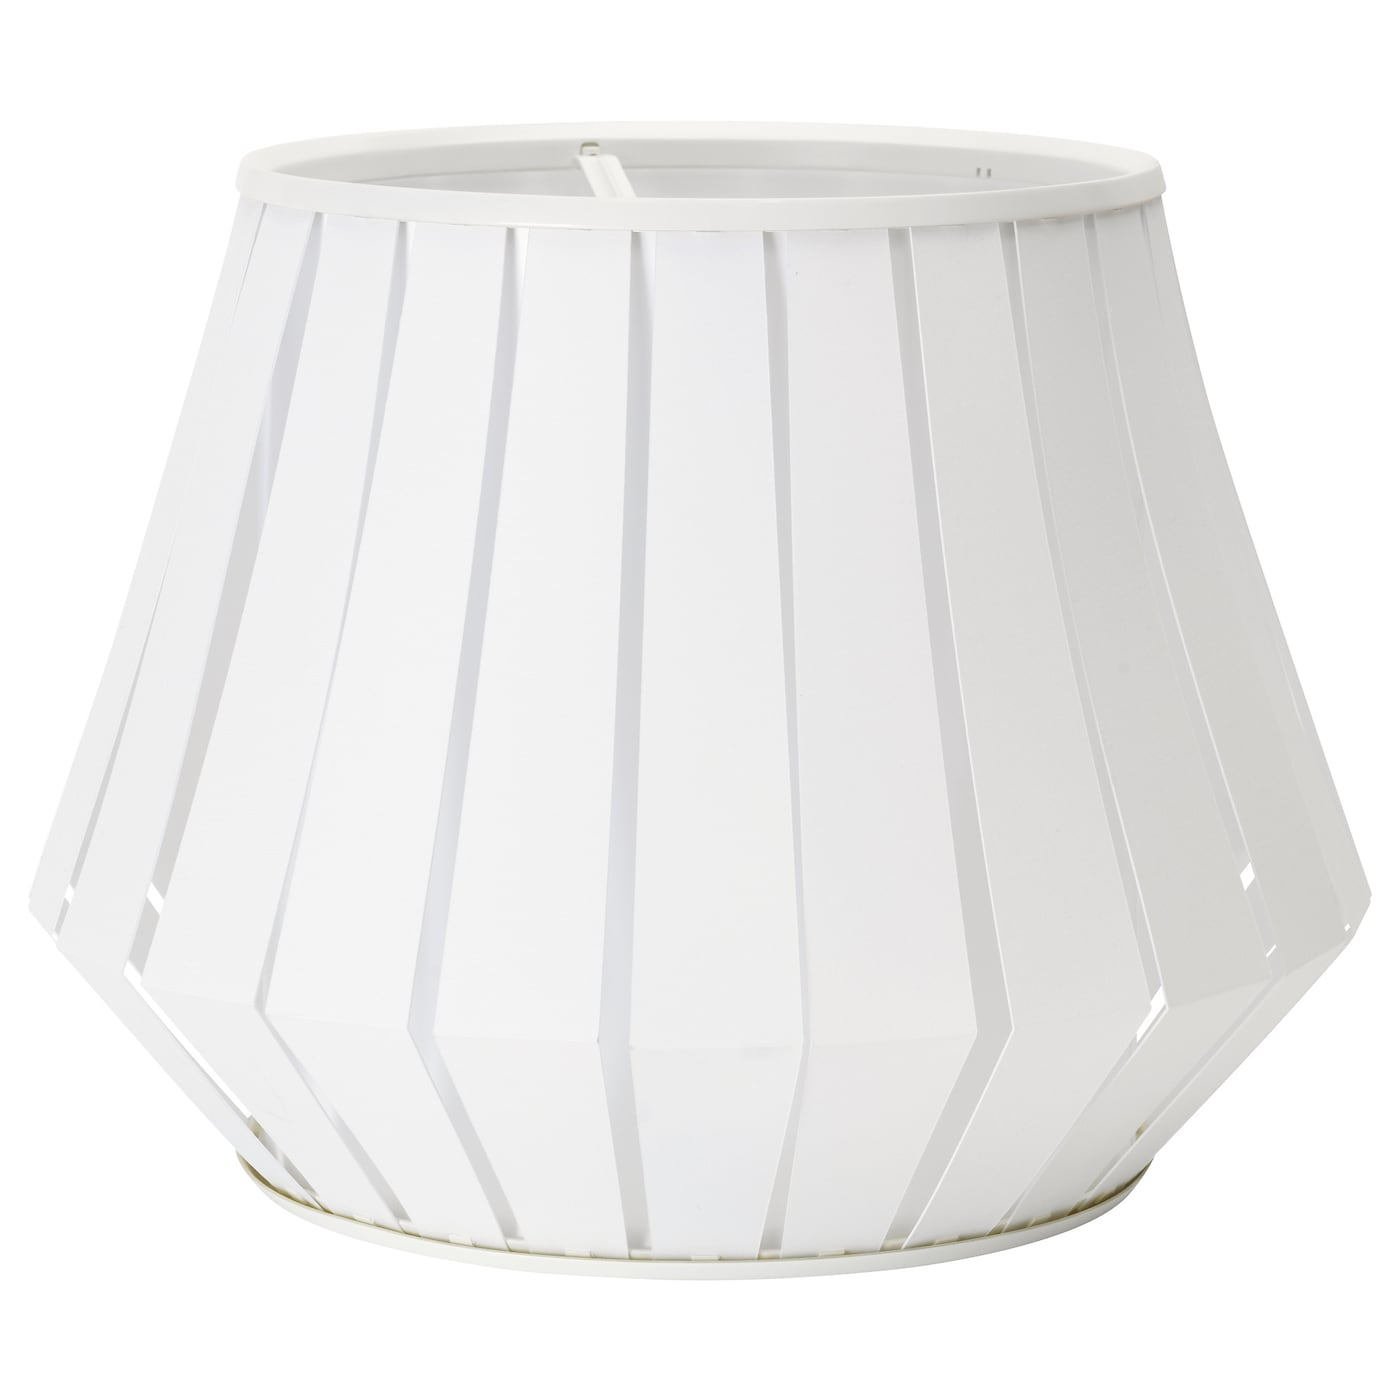 lakheden lamp shade white 55 cm ikea